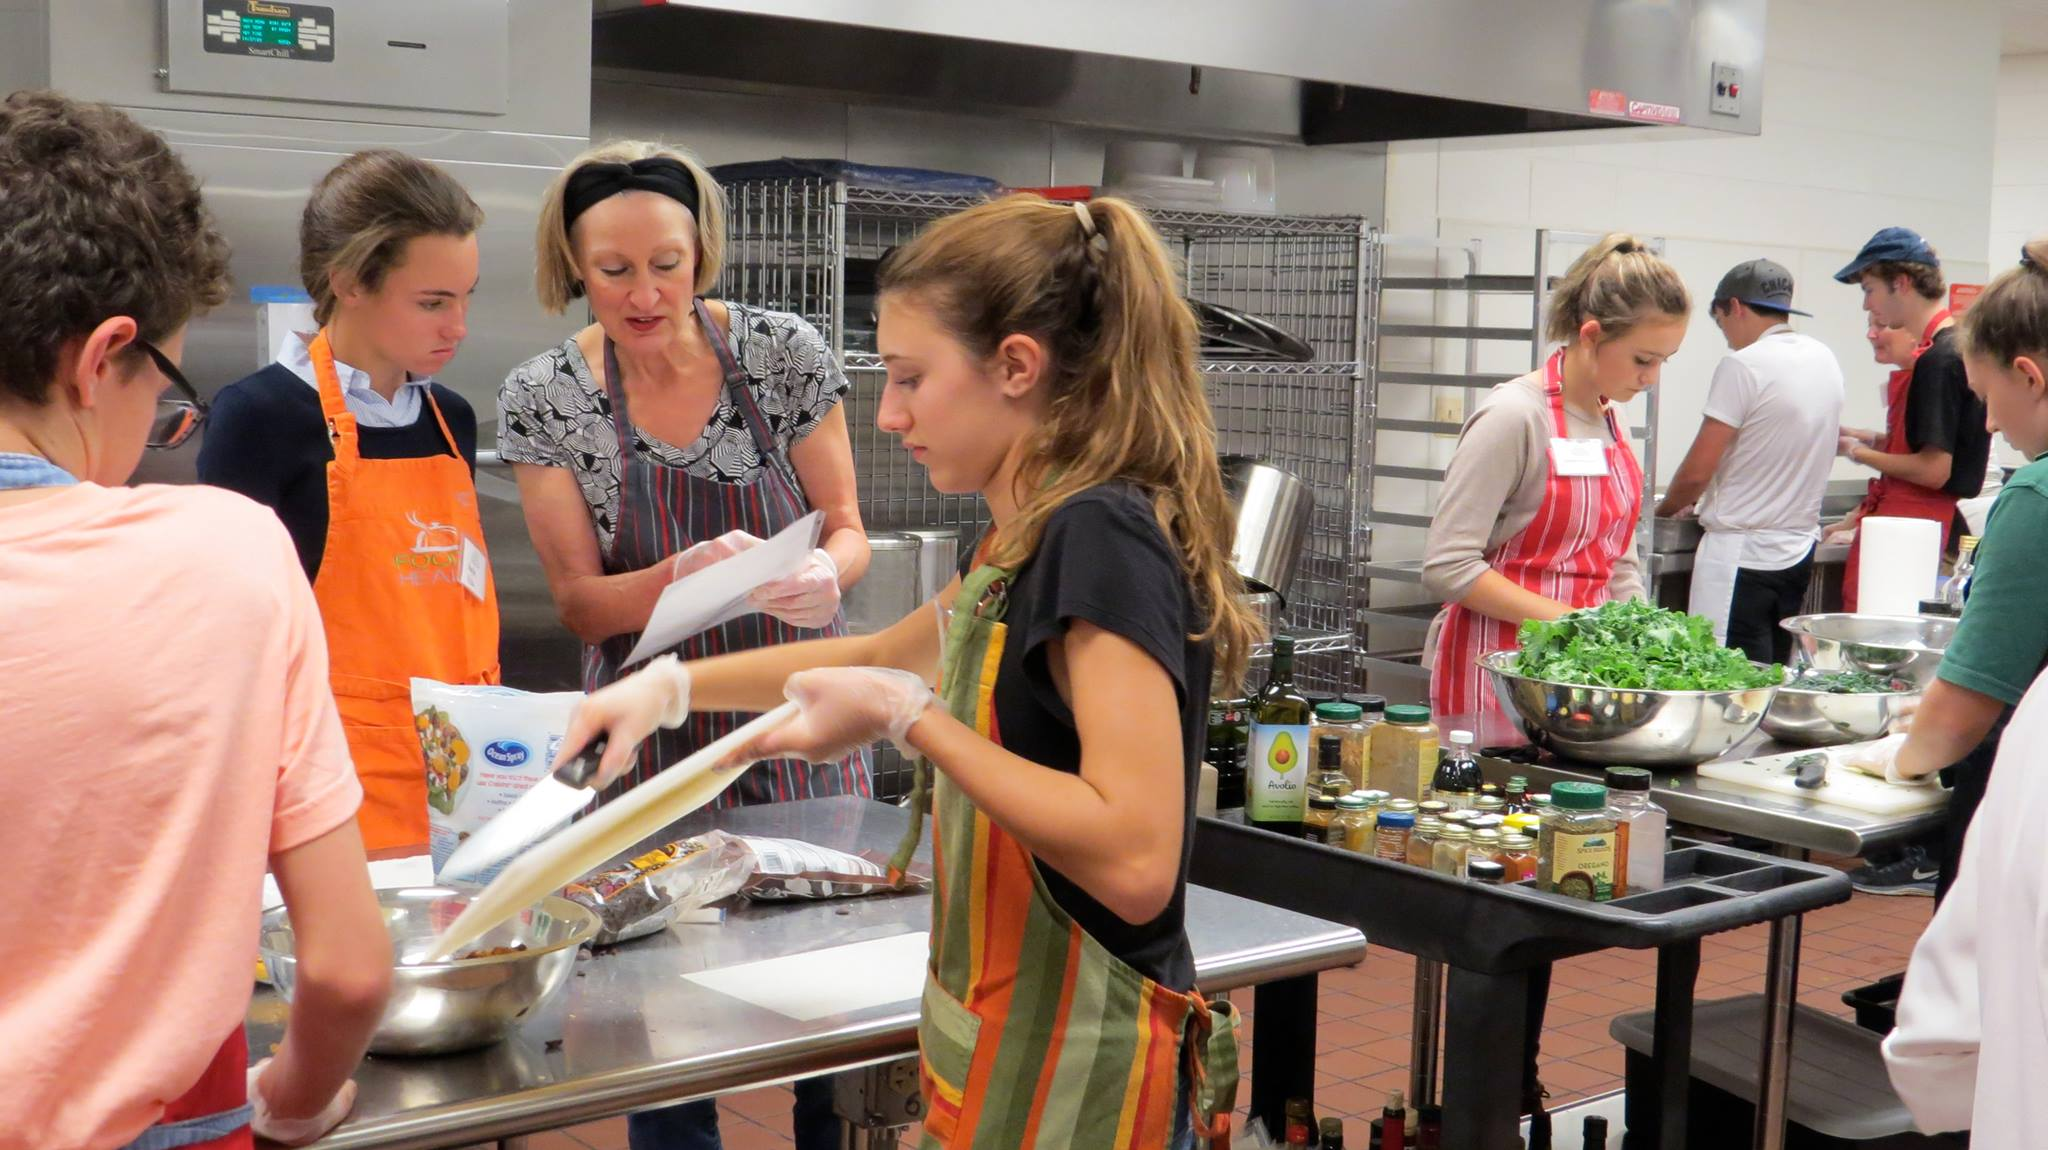 Teen volunteers working in the kitchen at Fox Valley Food for Health.